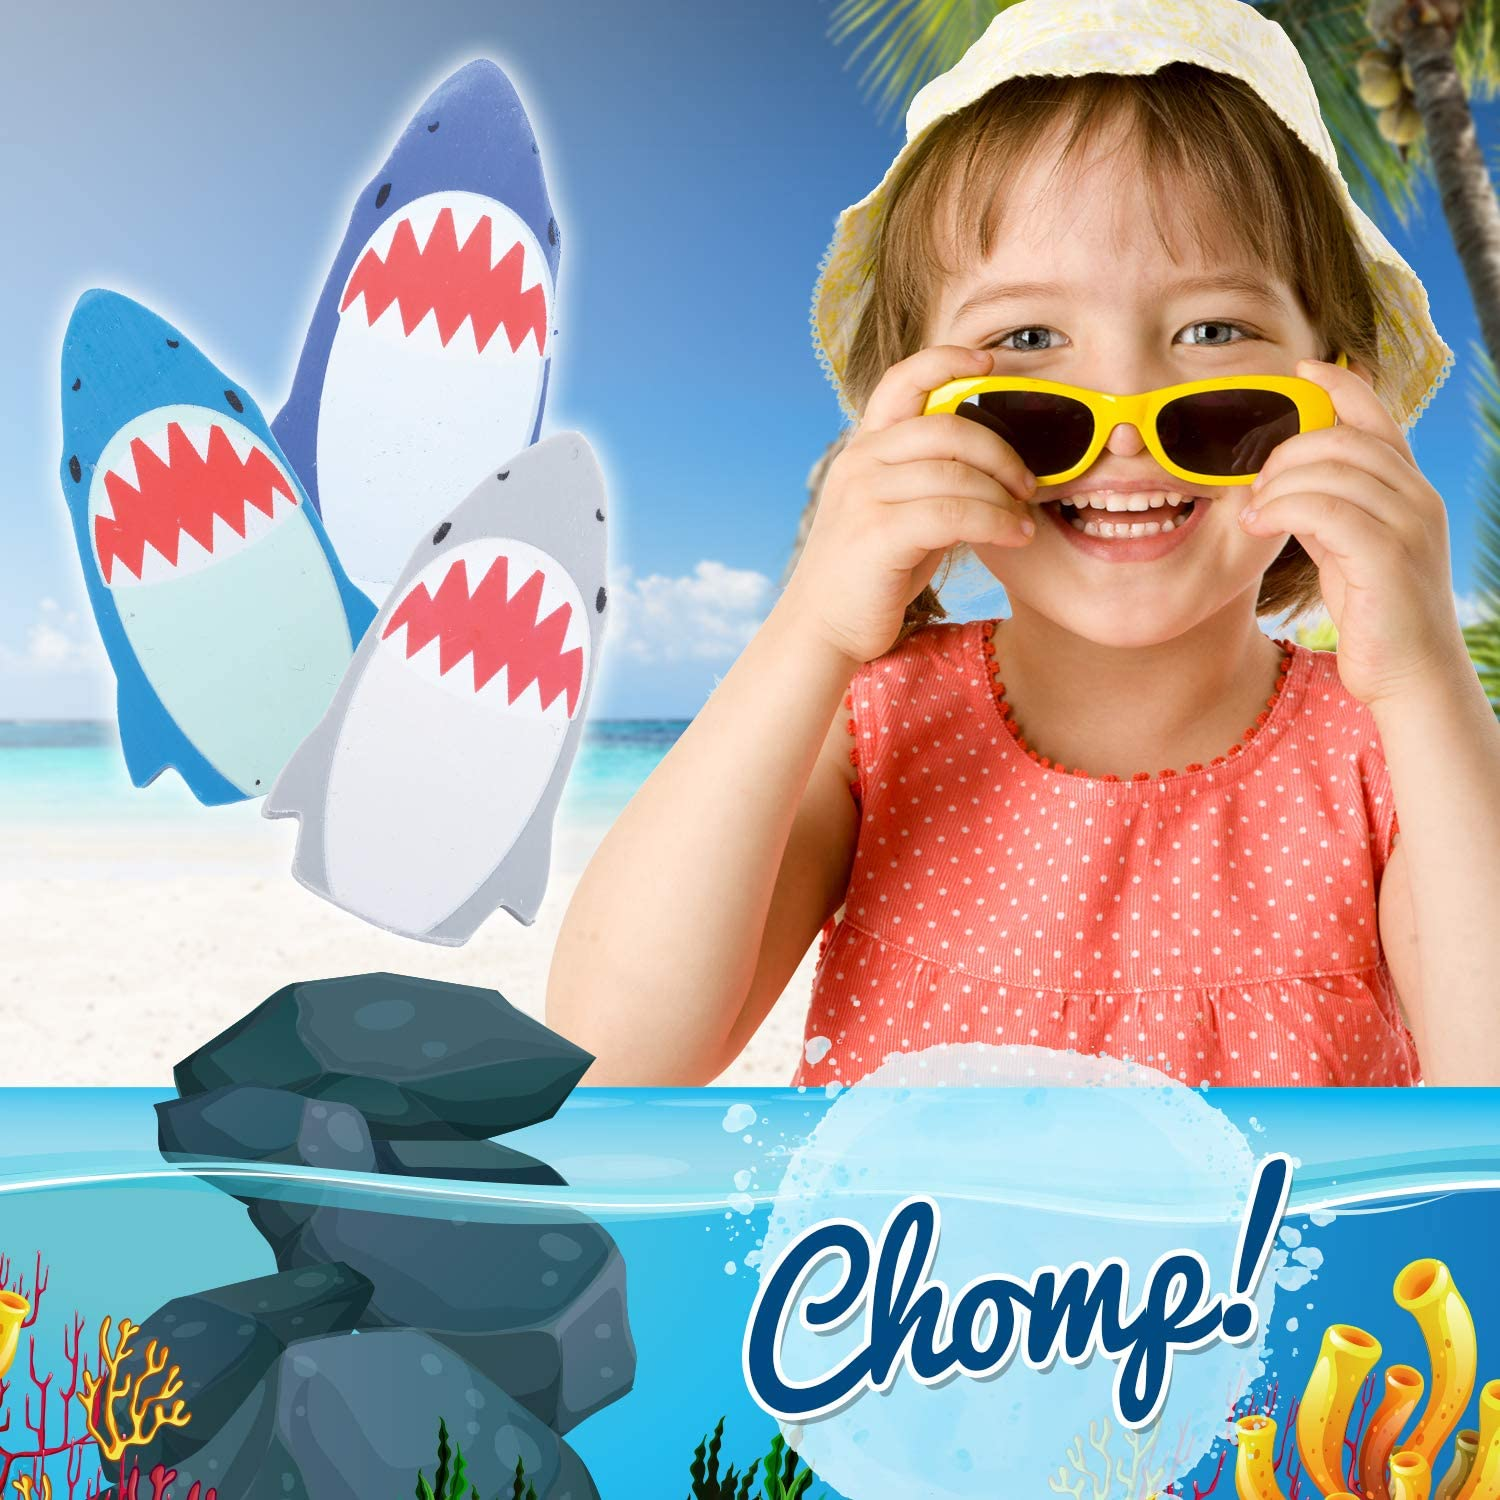 Toy Shark Erasers Kids Birthday Party U.S 12 Count Party Favors for Kids Themed Toys Supplies